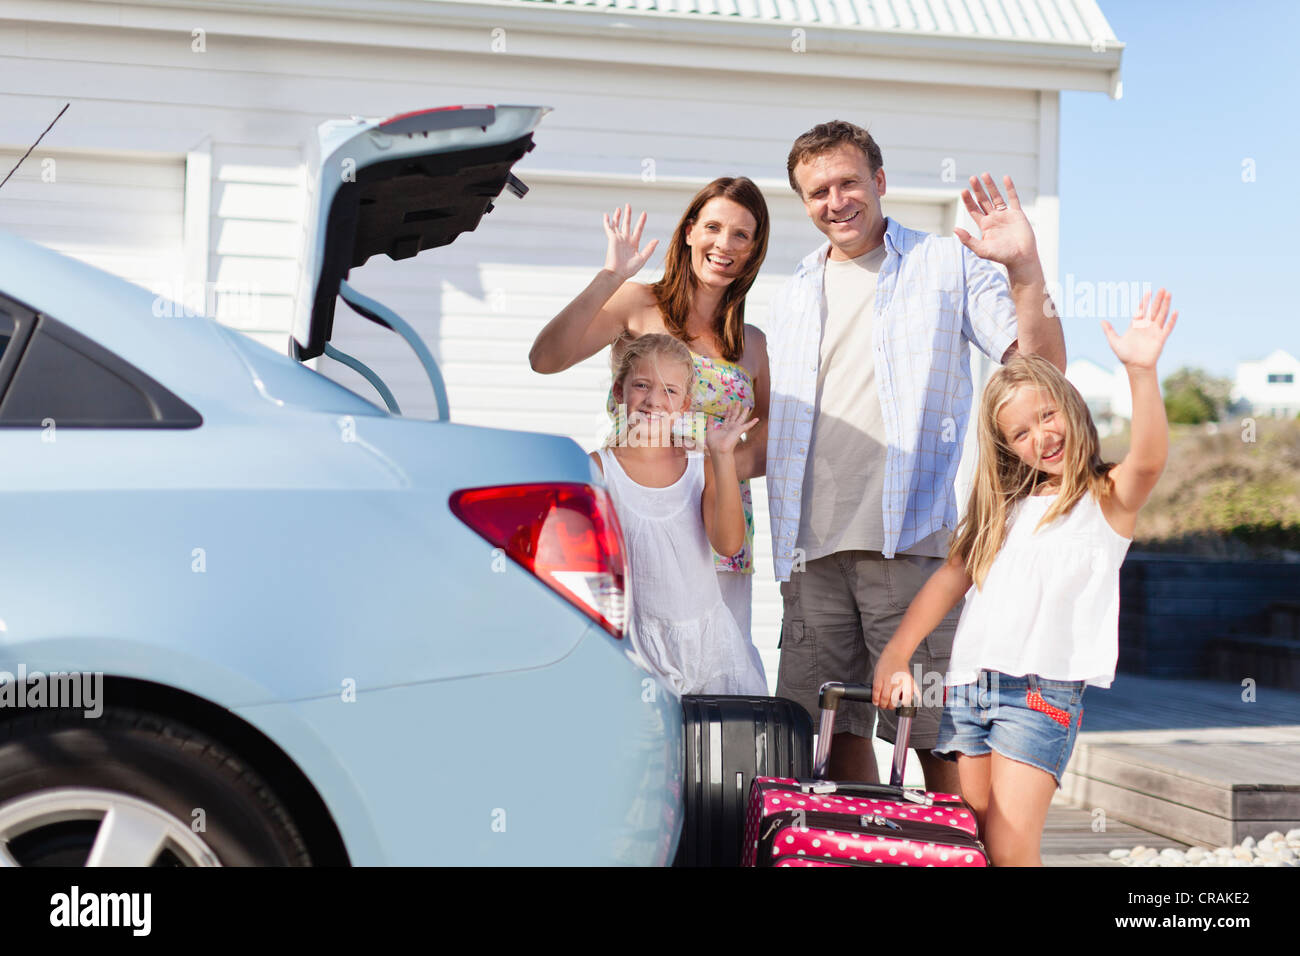 Family loading up car trunk for vacation - Stock Image